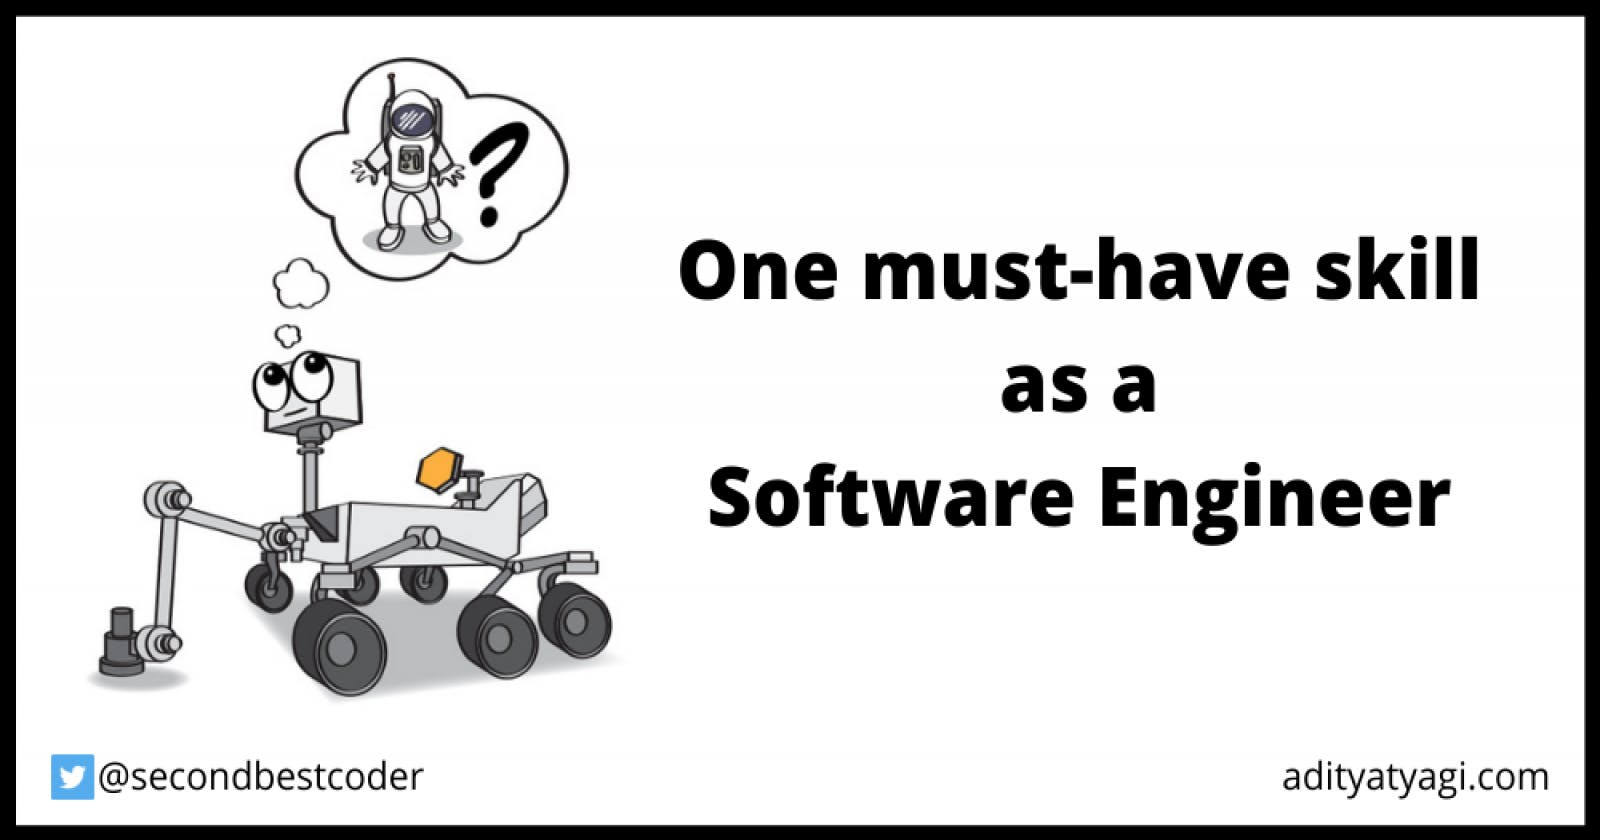 One must-have skill as a software engineer